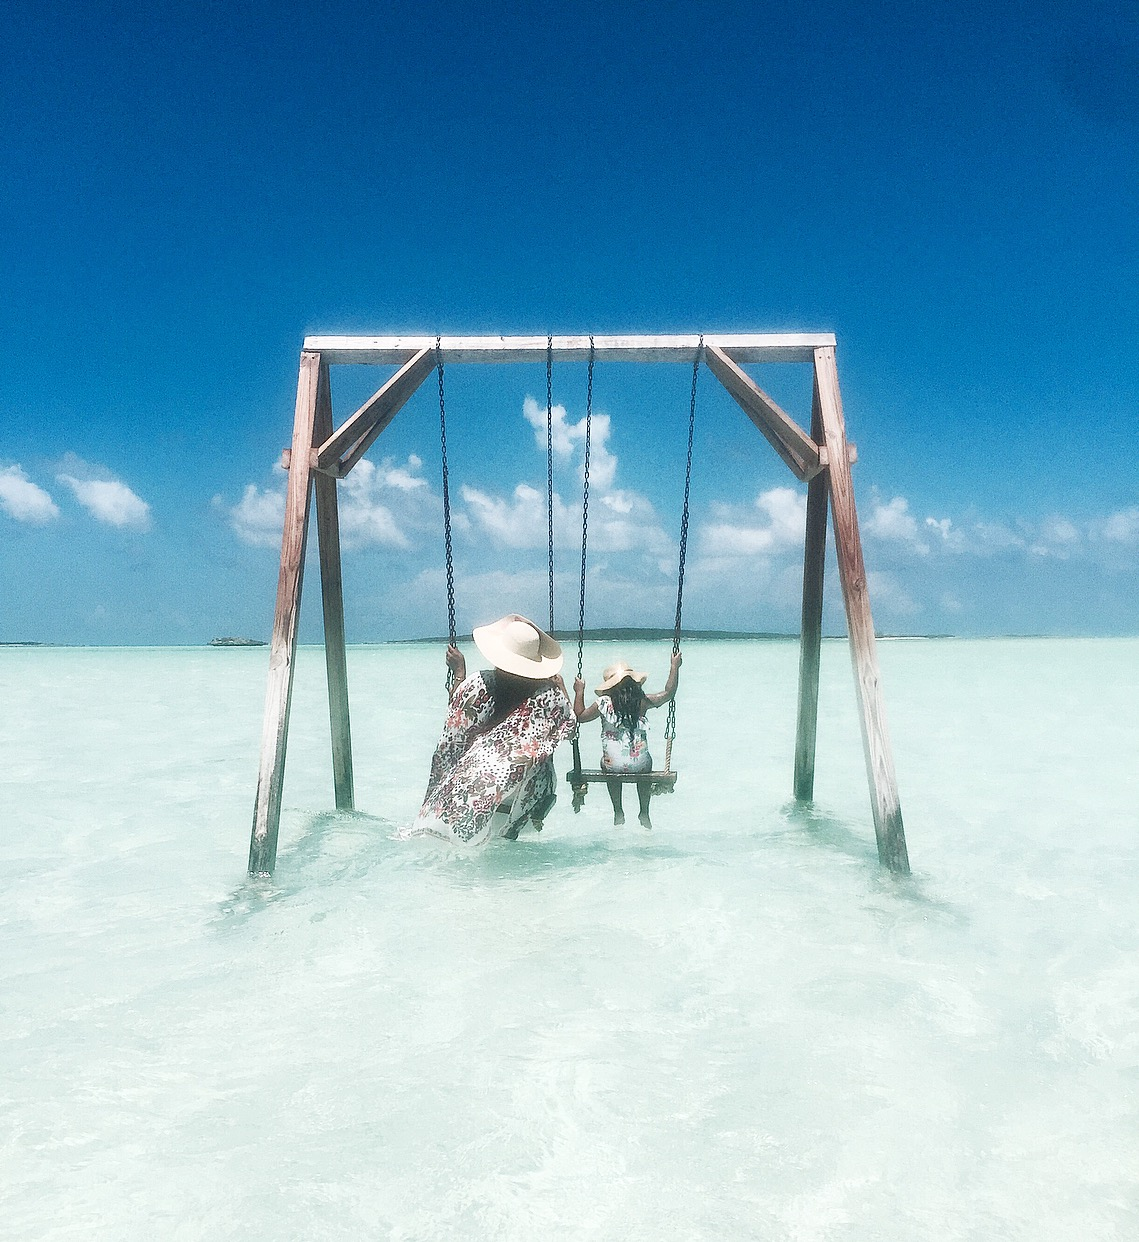 COCO PLUM BEACH - This time my number 1 thing to do in Exuma was to swing in the caribbean sea! COCO PLUM beach made it happen (and ofcourse, the Fyre Festival). A beautiful long beach with numerous swings so everyone gets a turn. MAKE SURE TO CHECK THE HIGH TIDE/LOW TIDE times before you go!